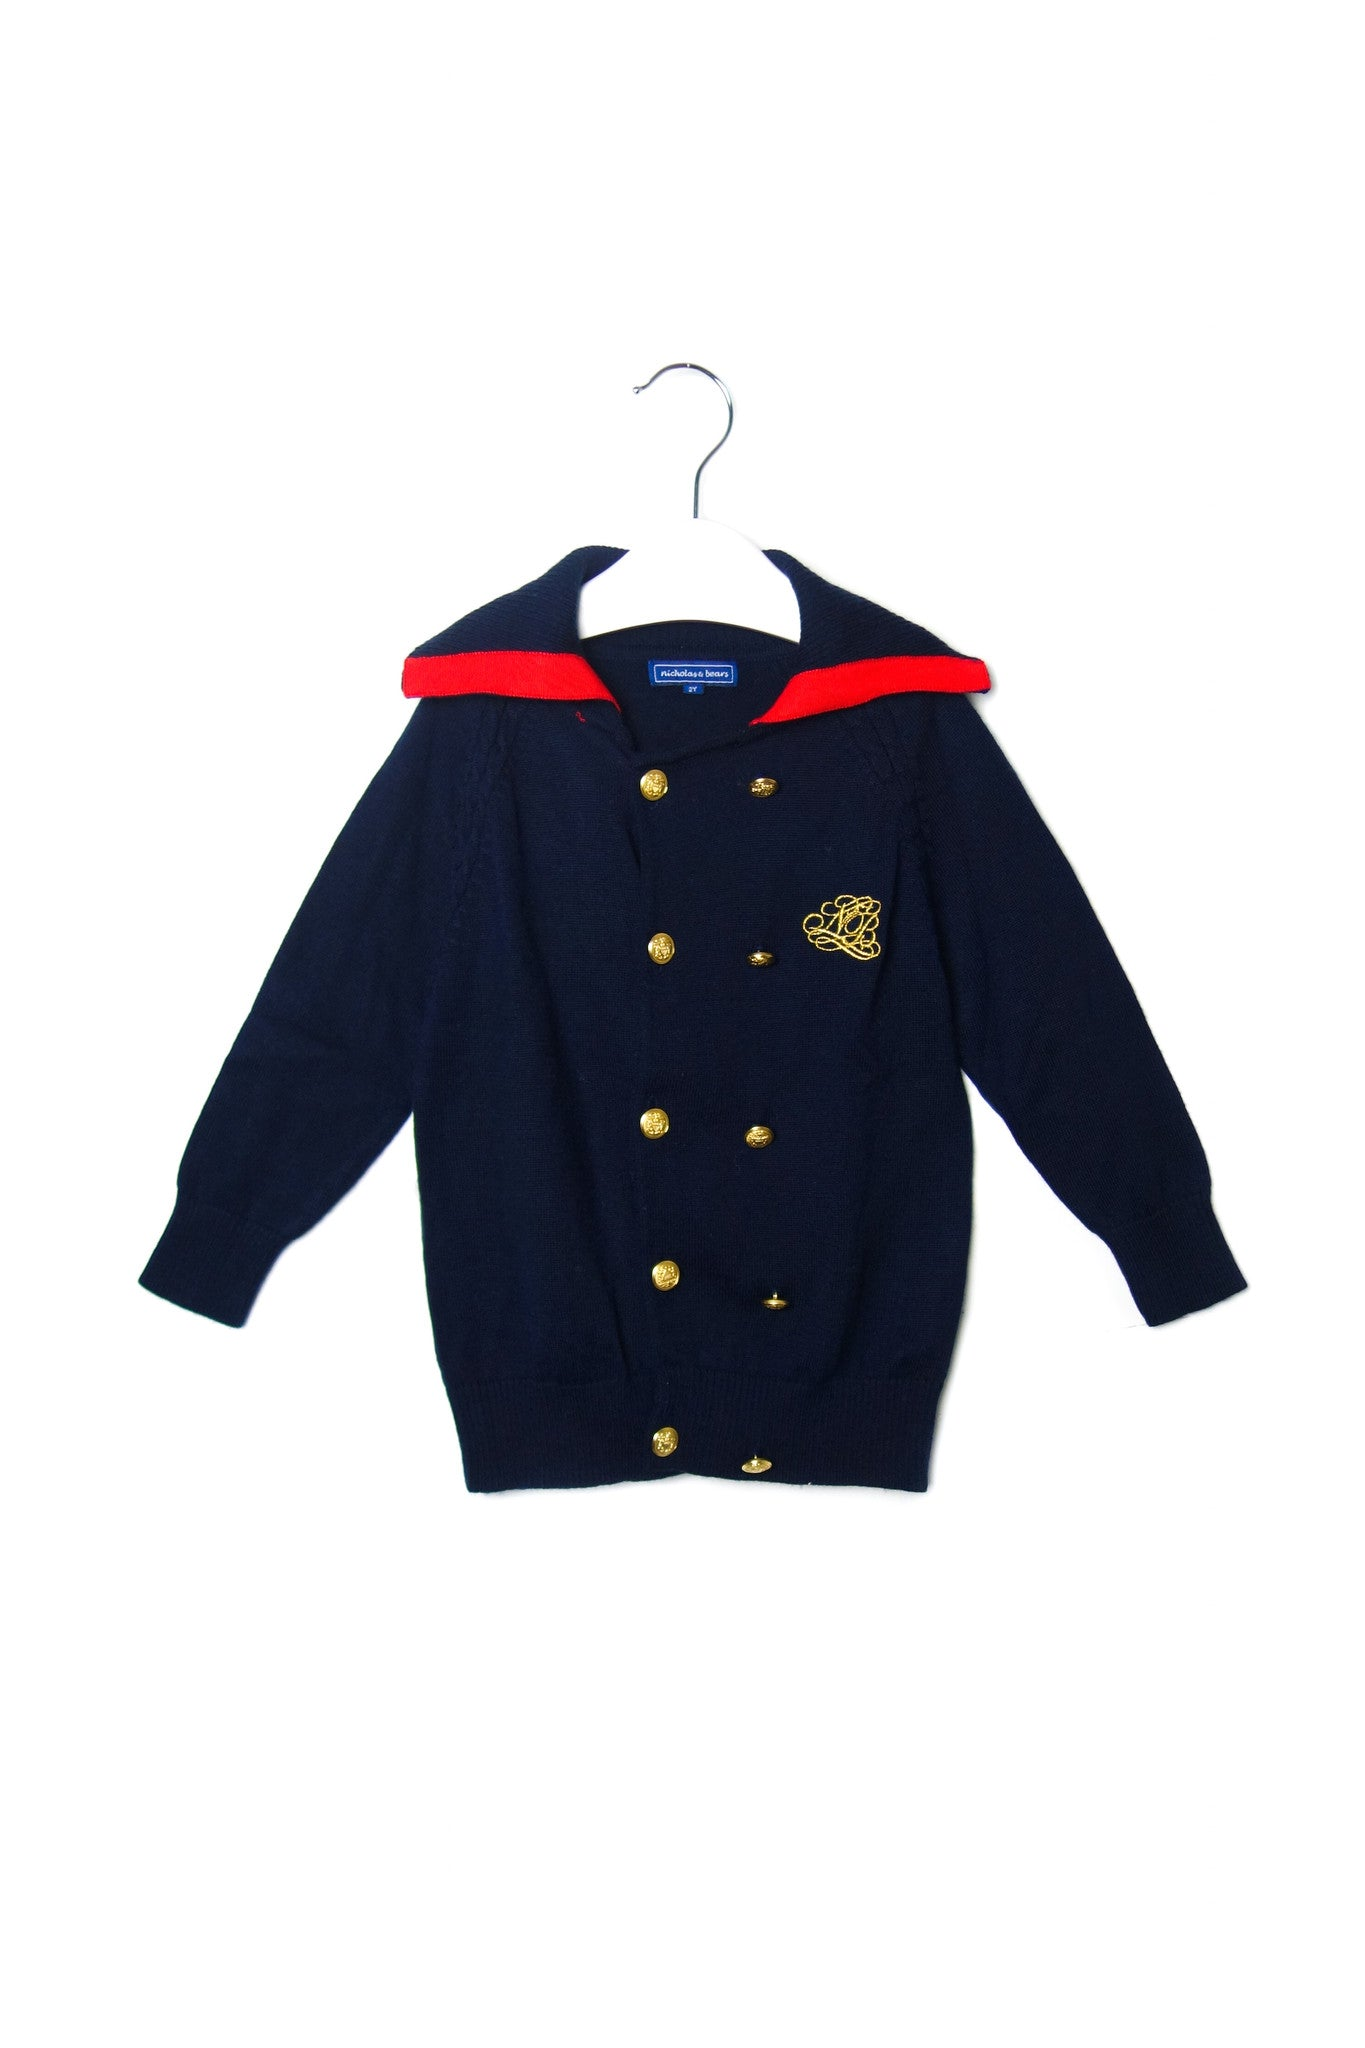 10001825 Nicholas & Bears Kids~Cardigan 2T at Retykle